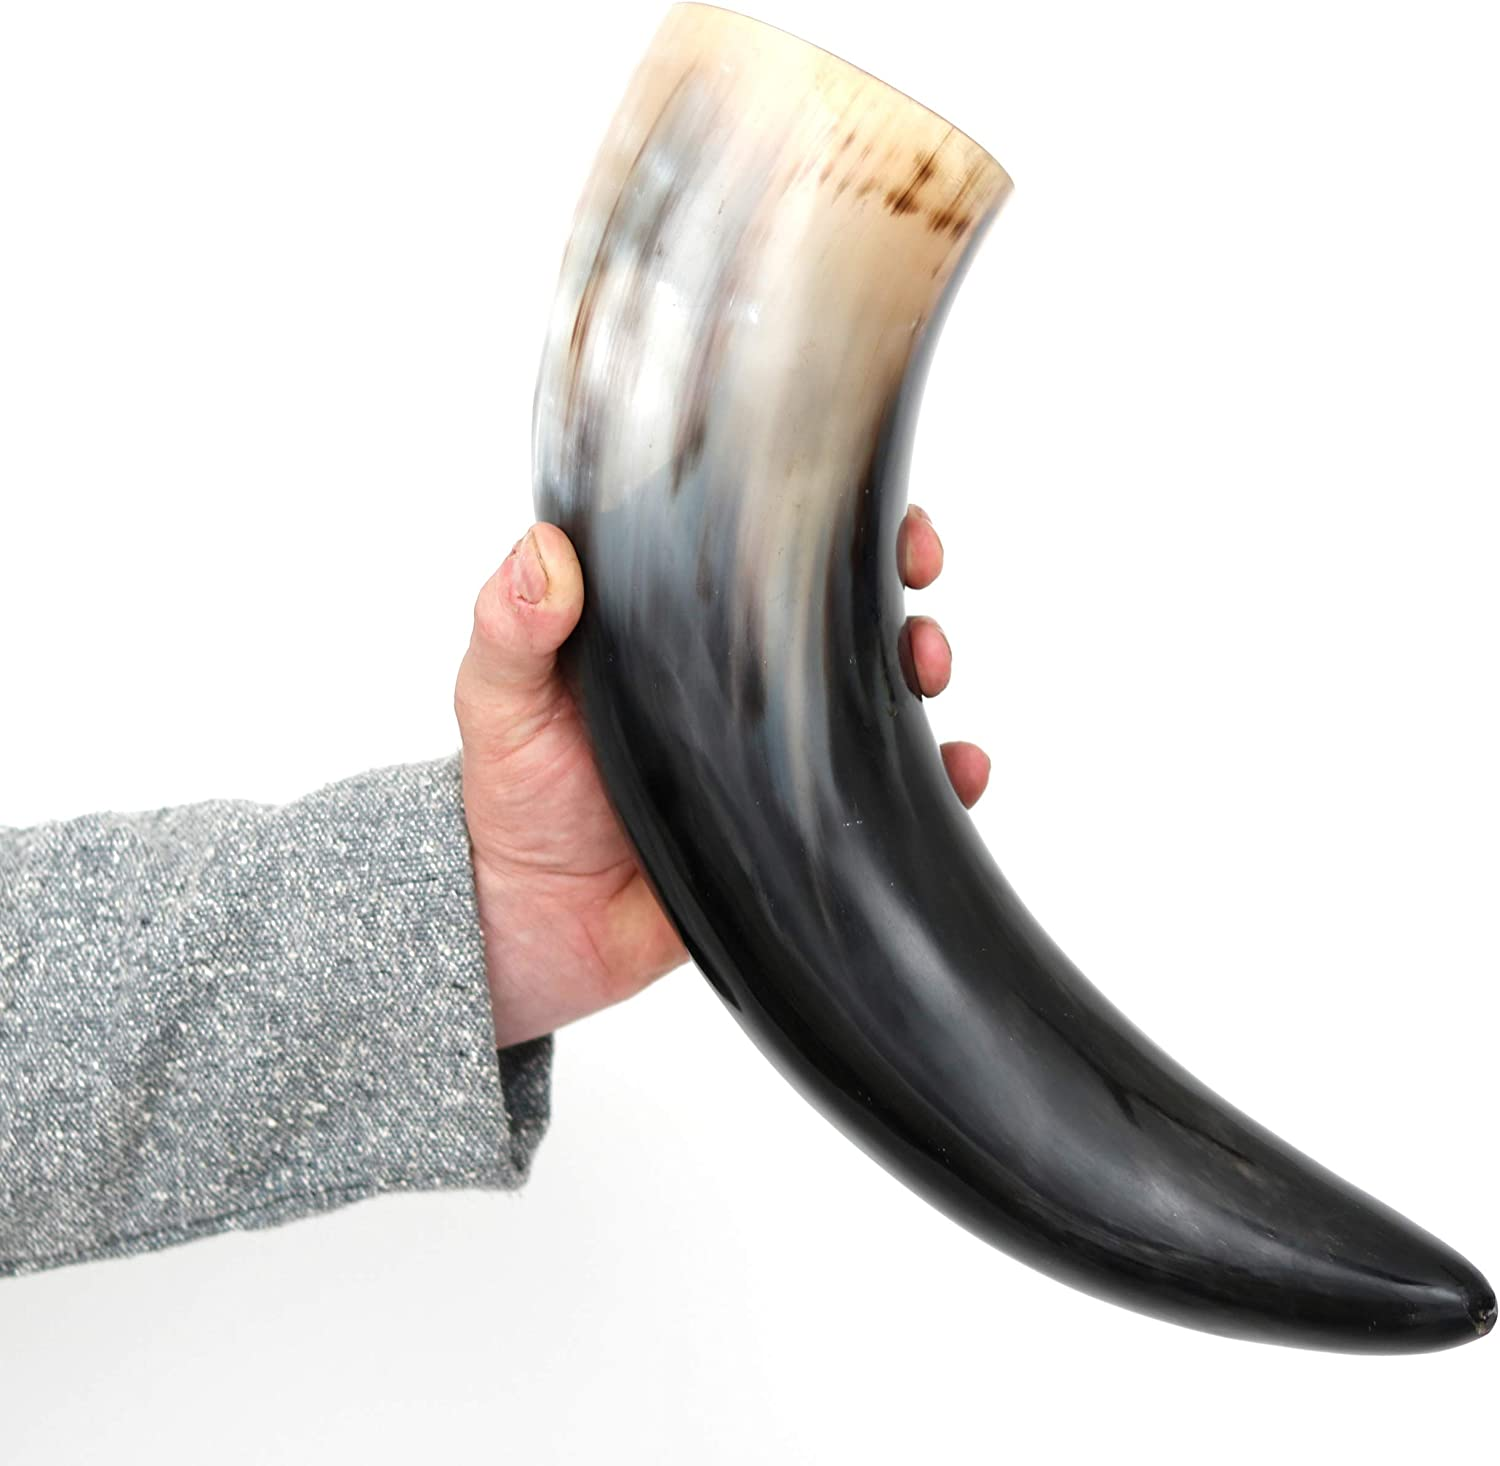 Mythrojan THE WITCHER COMPANION Viking Drinking Horn with Brown Leather holder Authentic Medieval Inspired Viking Wine//Mead Mug Polished Finish